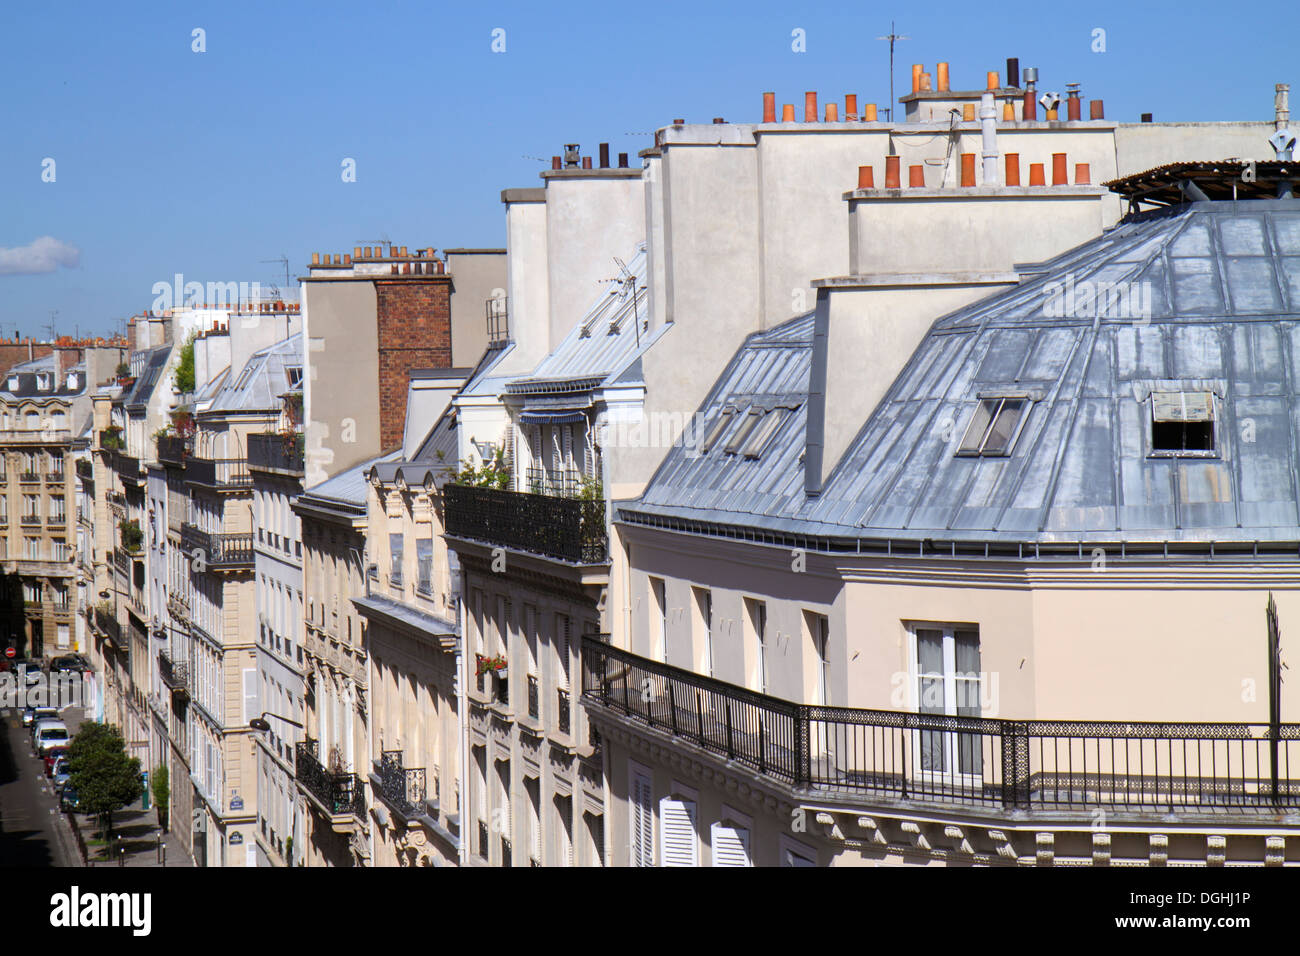 Paris France Europe French 9th arrondissement Rue la Bruyere street aerial Haussmann apartment buildings rooftops chimneys - Stock Image